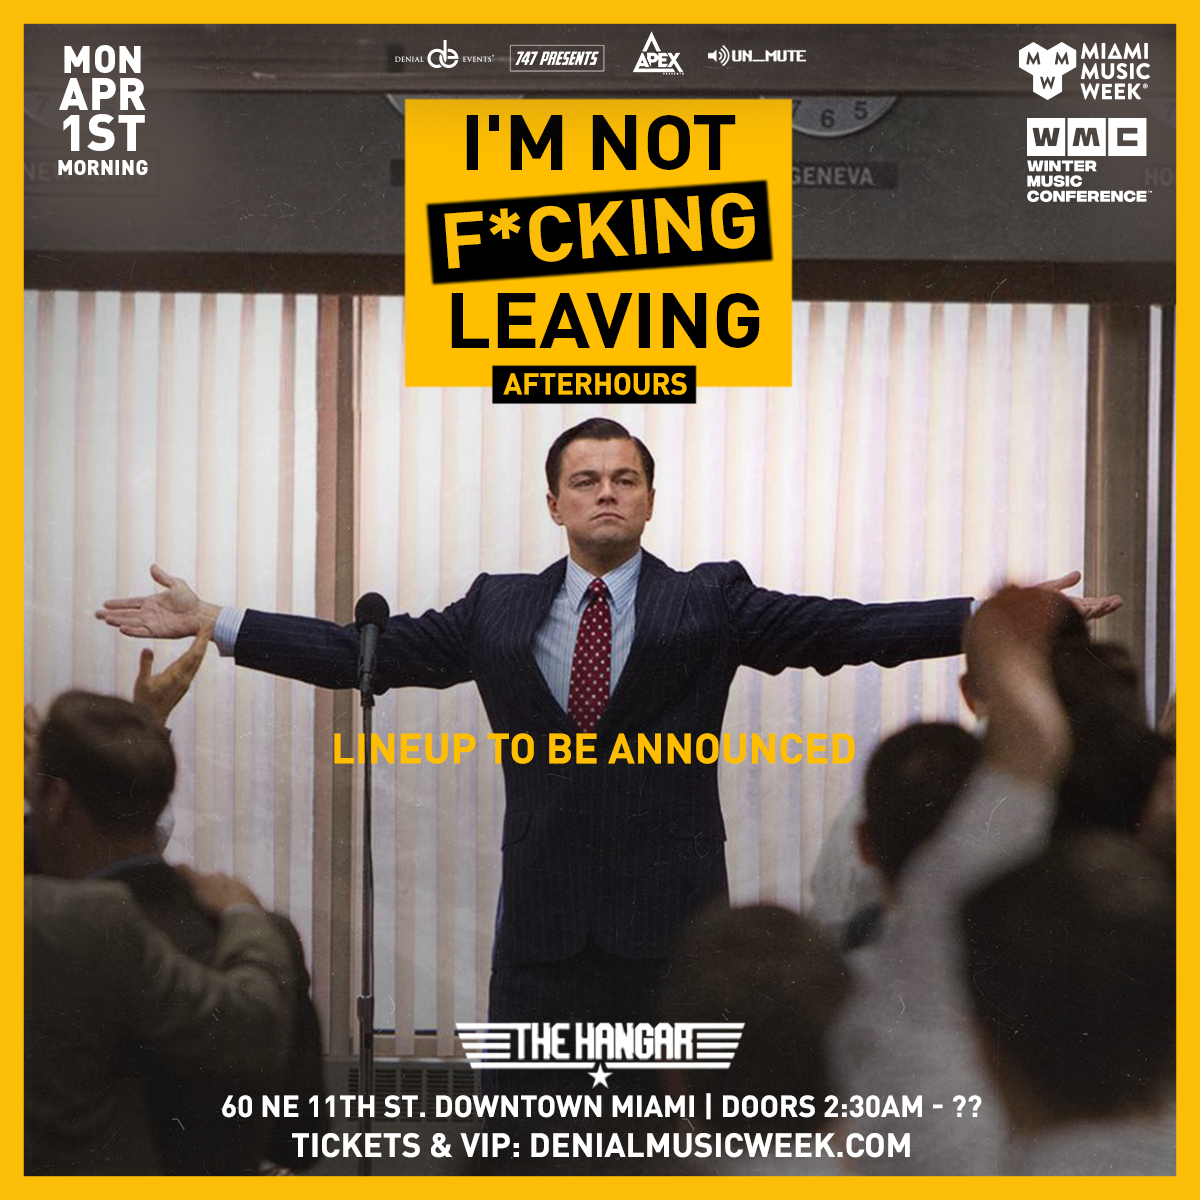 I'm Not F*cking Leaving (Afterhours) Image